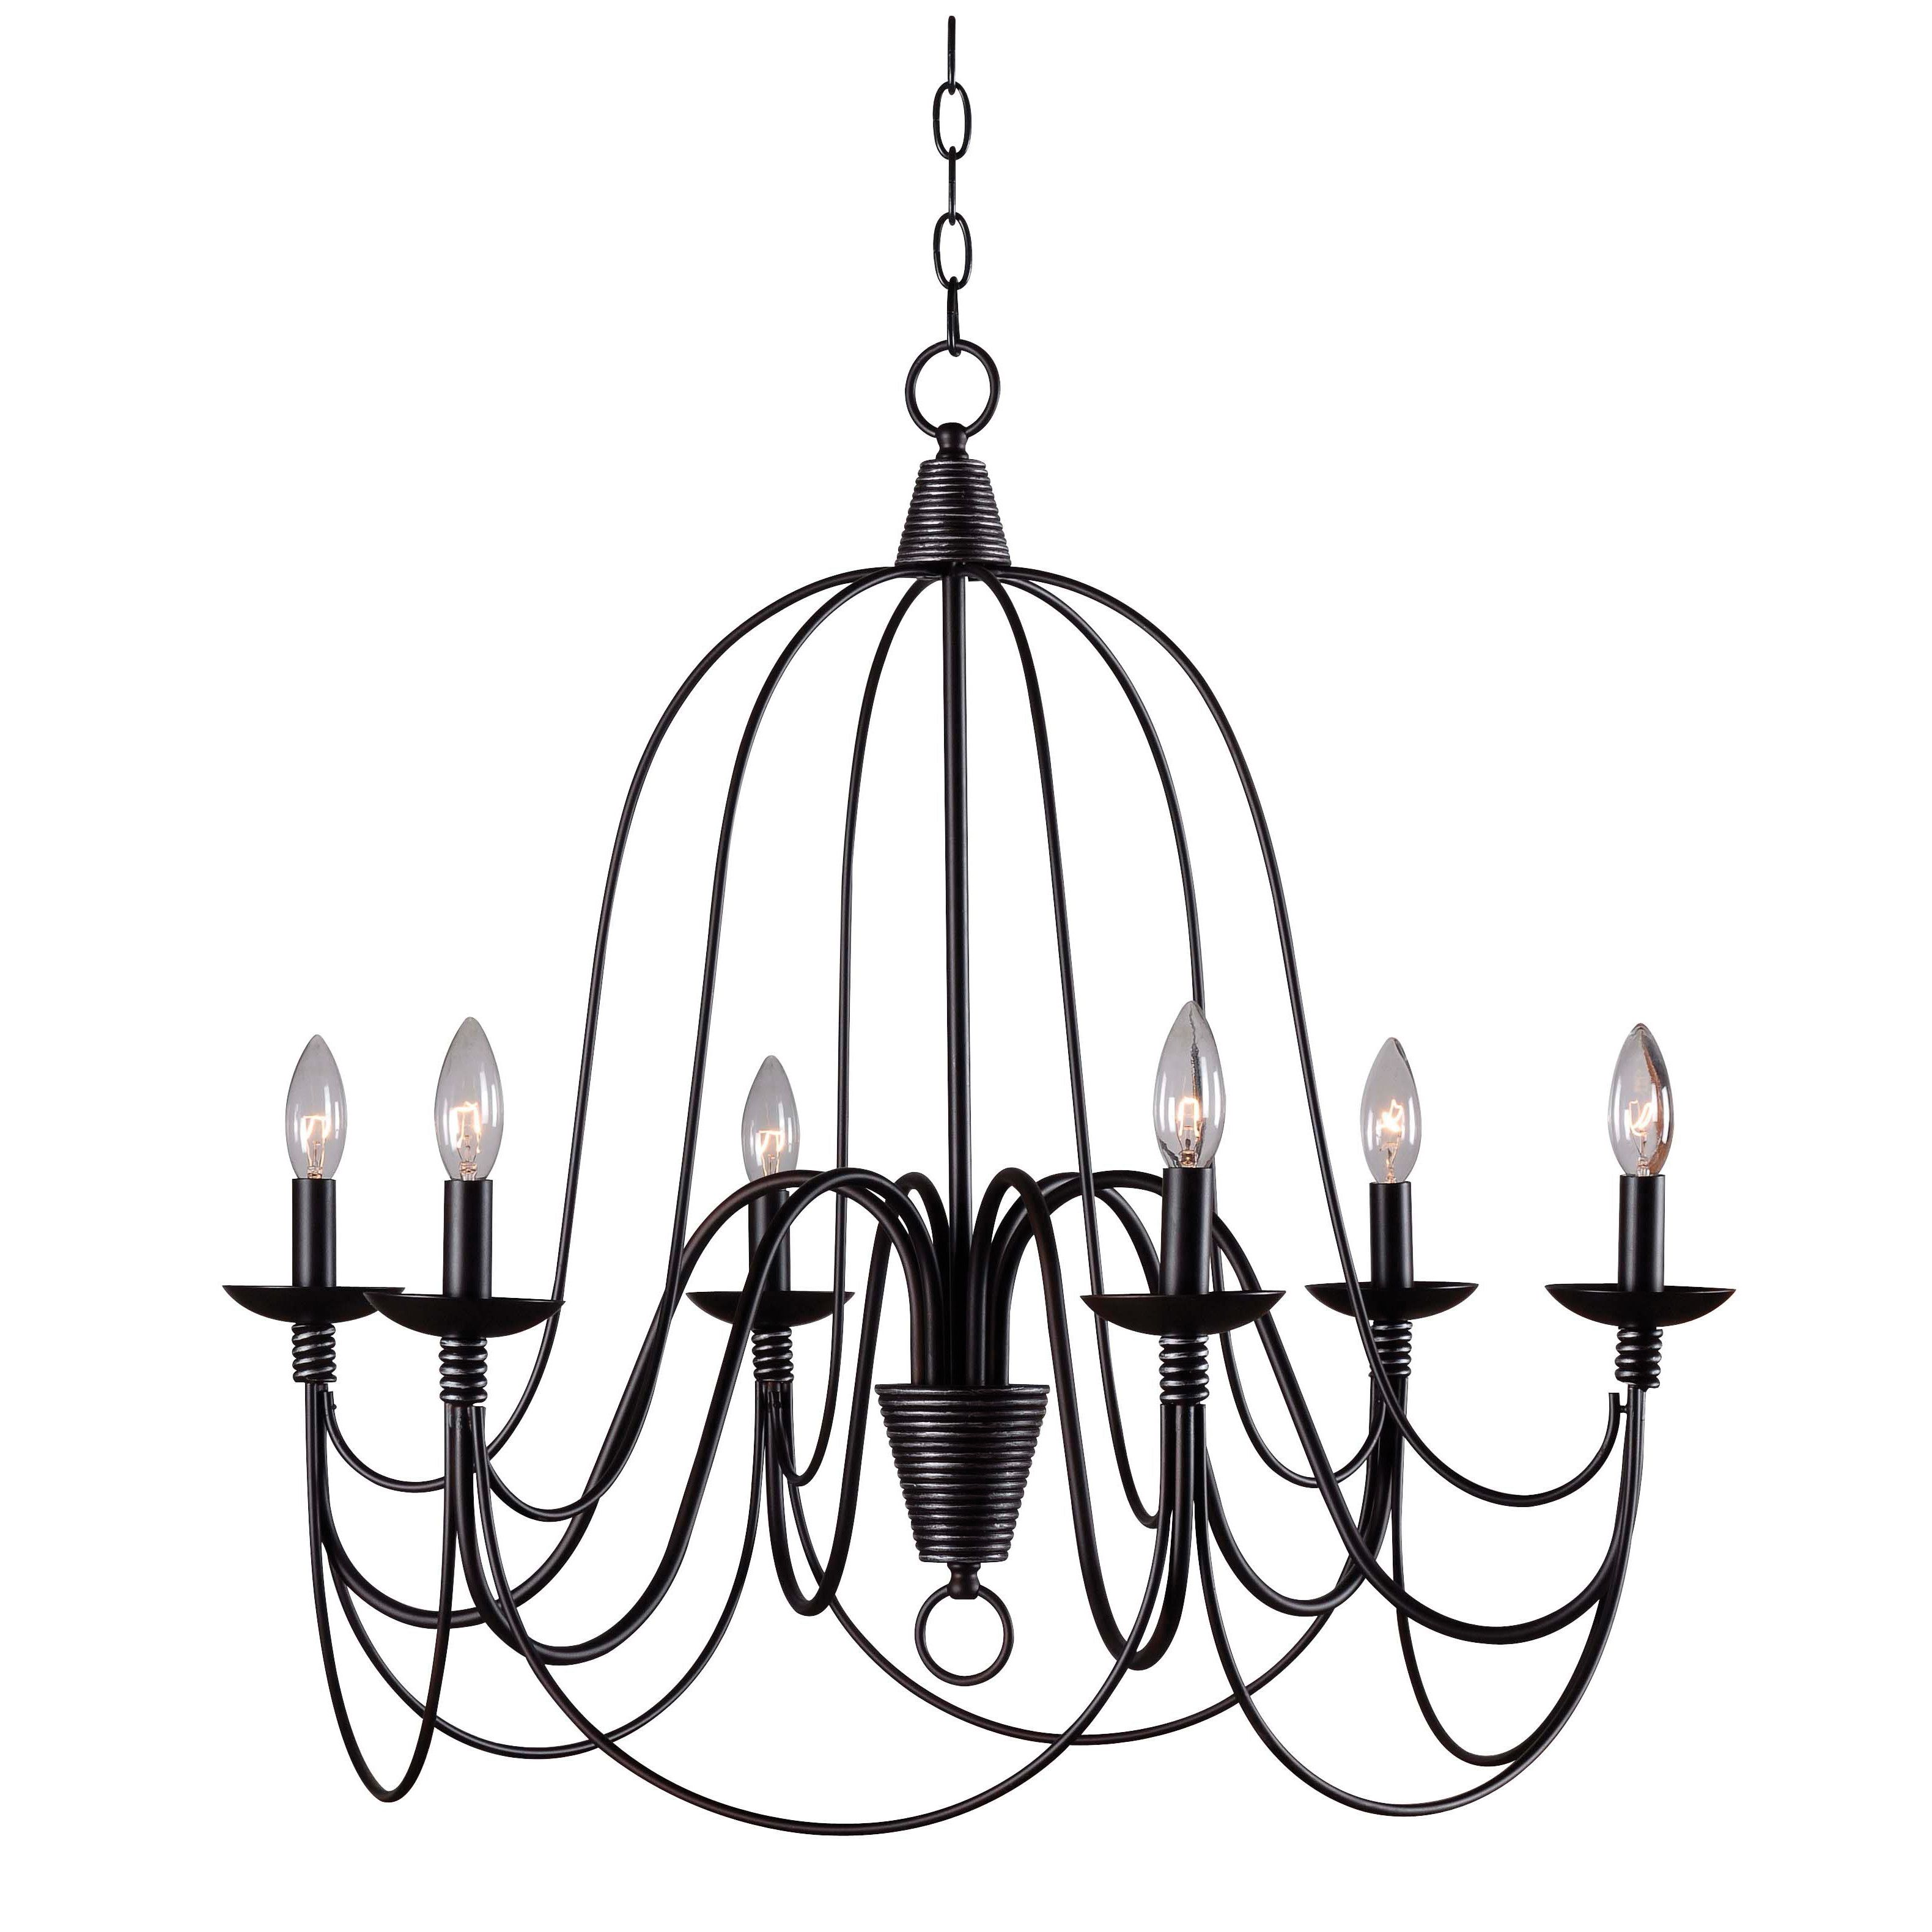 Red Barrel Studio Big Sky 6 Light Candle Style Chandelier